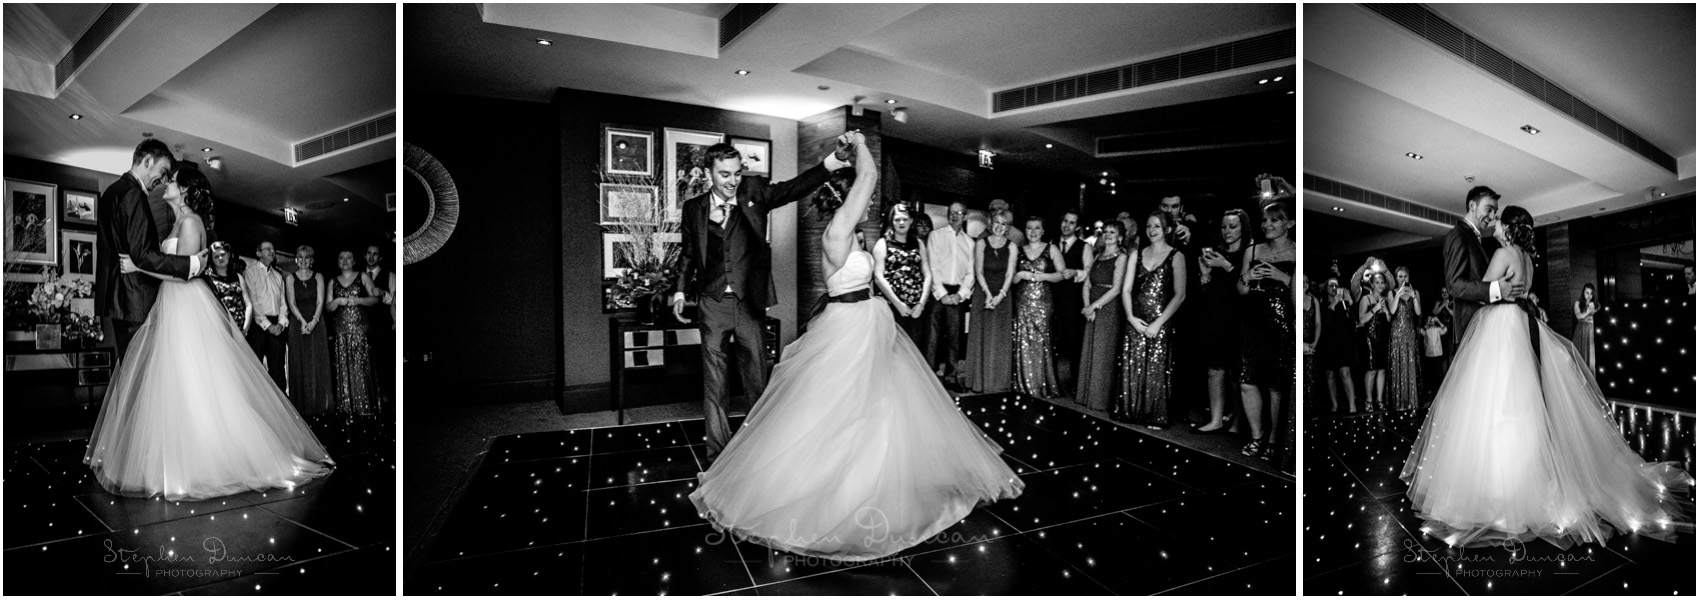 The Aviator wedding photography bride and groom dance black and white